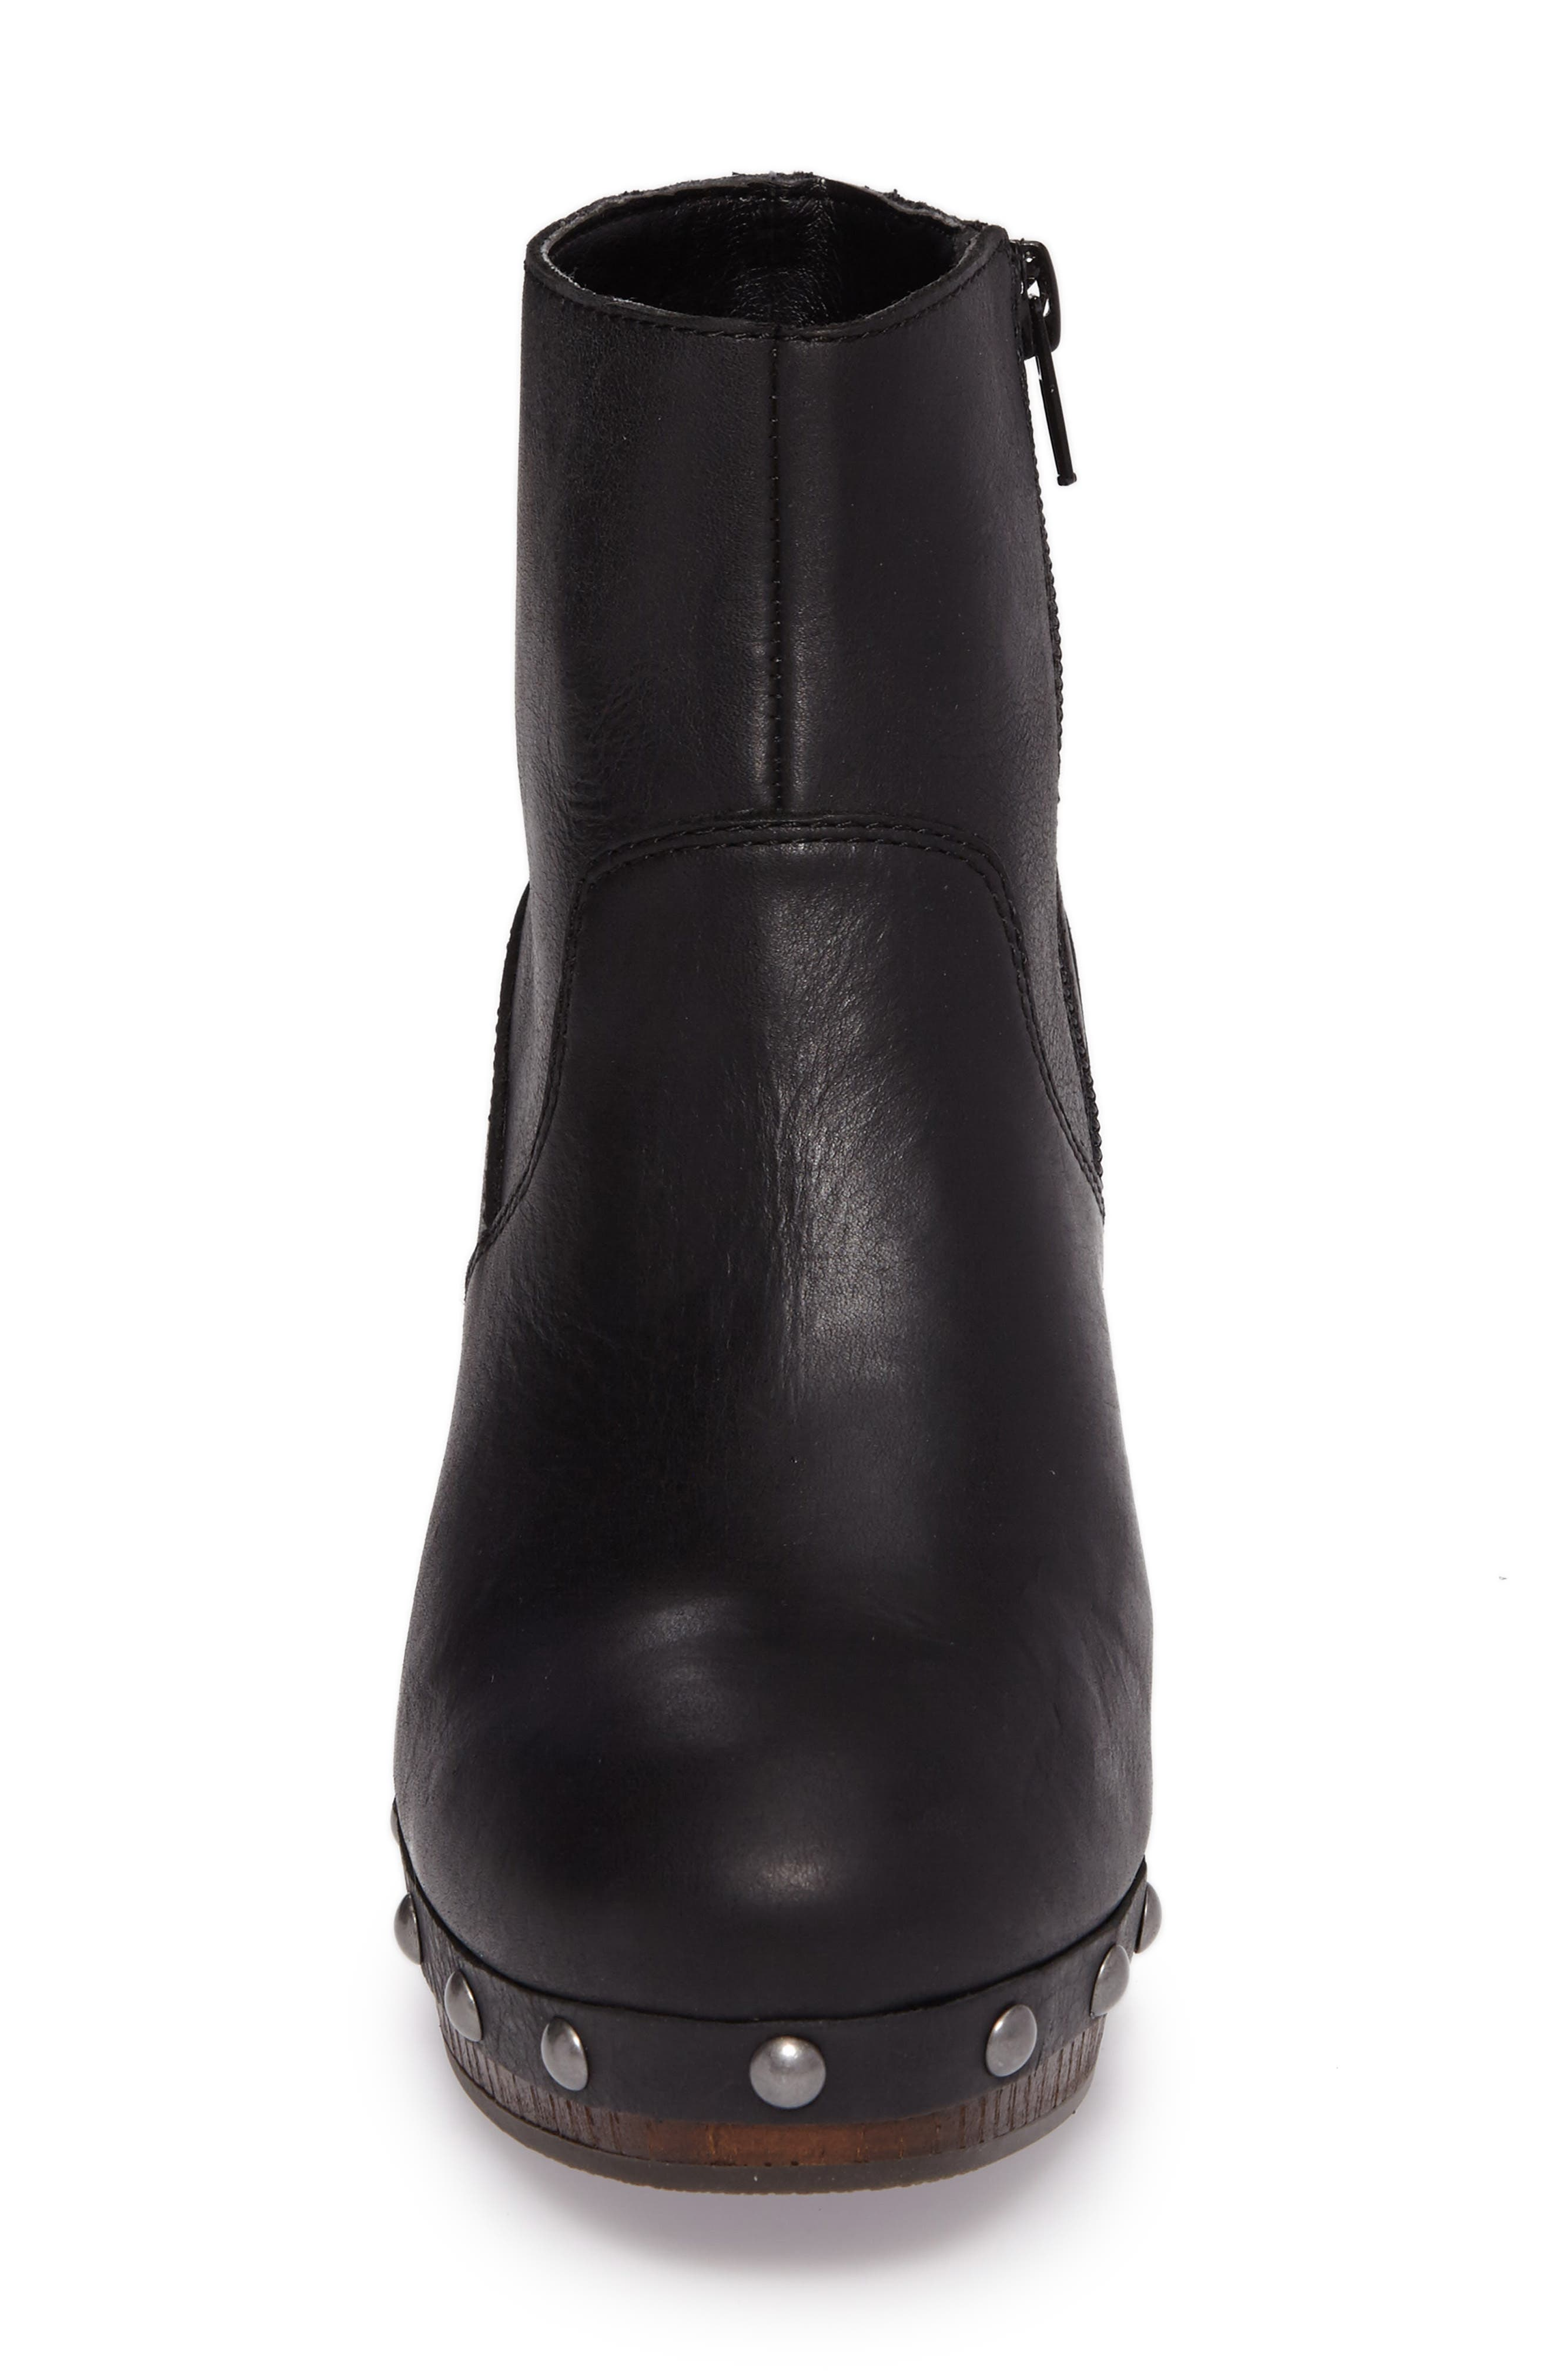 Yasamin Bootie,                             Alternate thumbnail 4, color,                             Black Leather